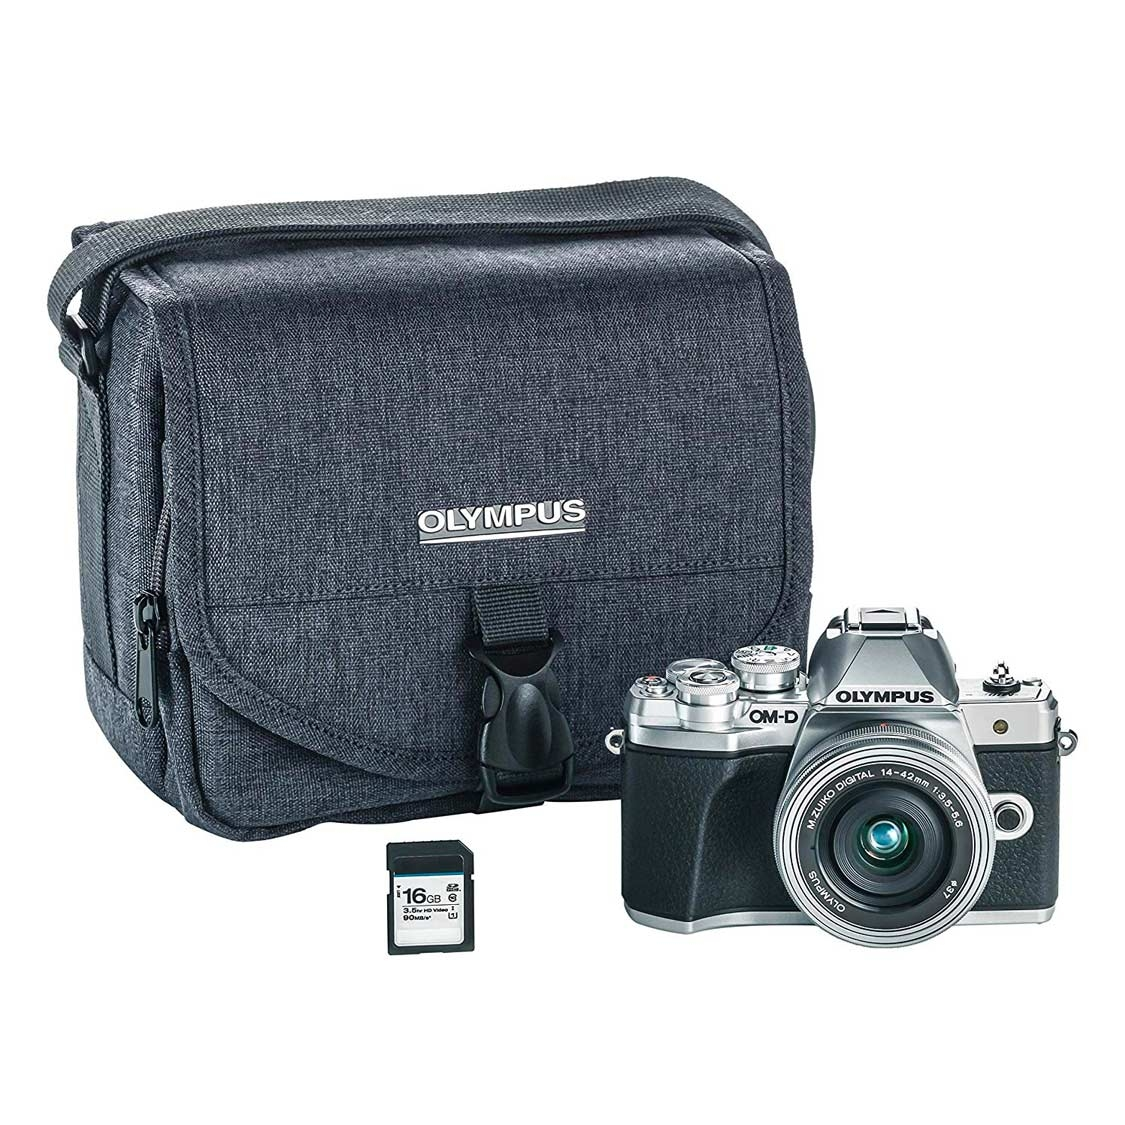 Olympus E-M10 Mark III (silver) with 14-42mm EZ Lens with Bag & 16GB SD Card